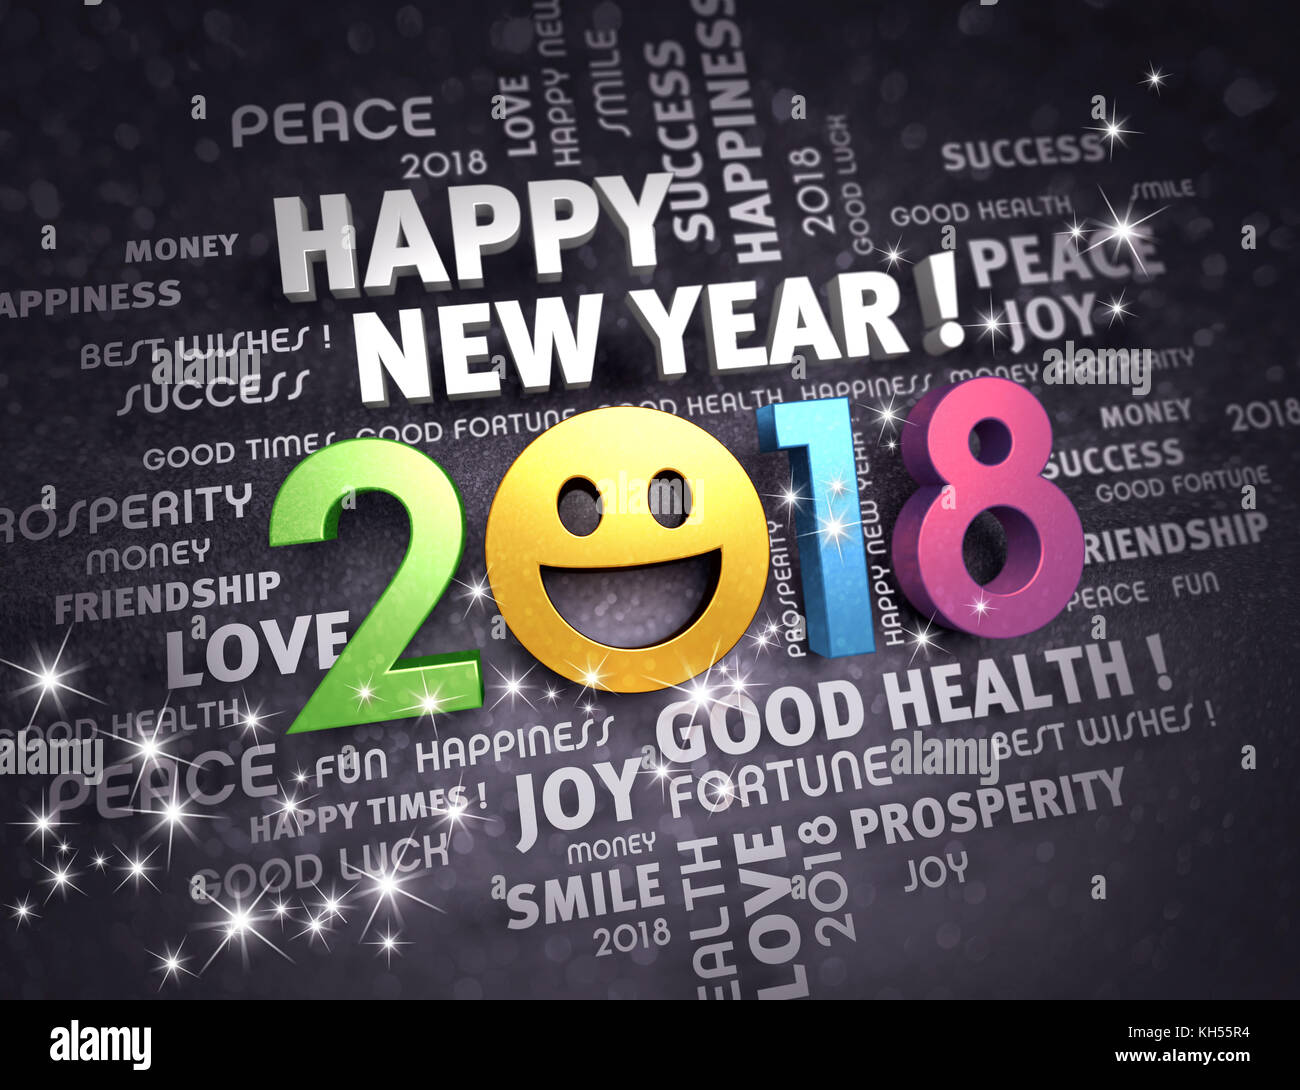 Happy new year 2018 date with a smiling face and greeting words happy new year 2018 date with a smiling face and greeting words on a glittering black background 3d illustration kristyandbryce Choice Image